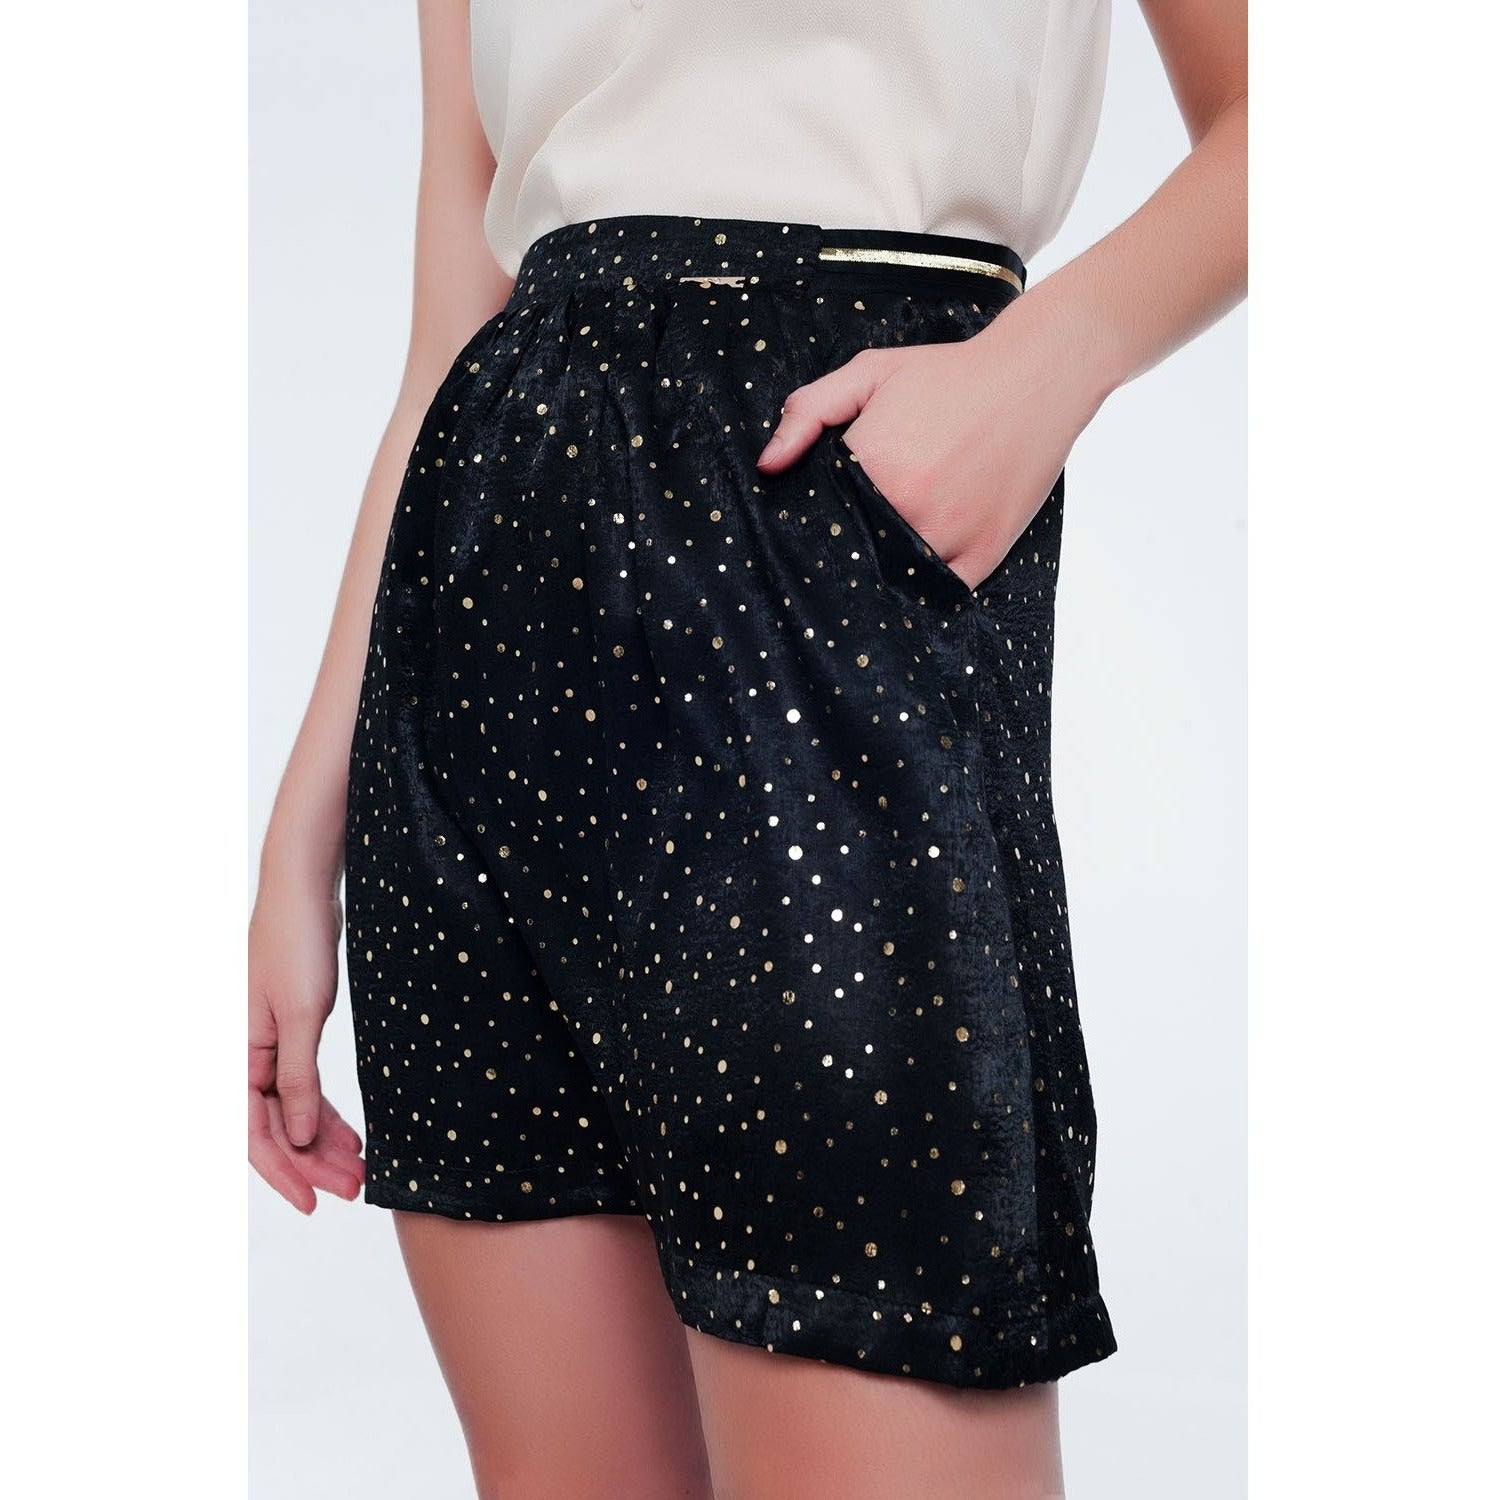 Black Mini Skirt with Gold Polka Dots